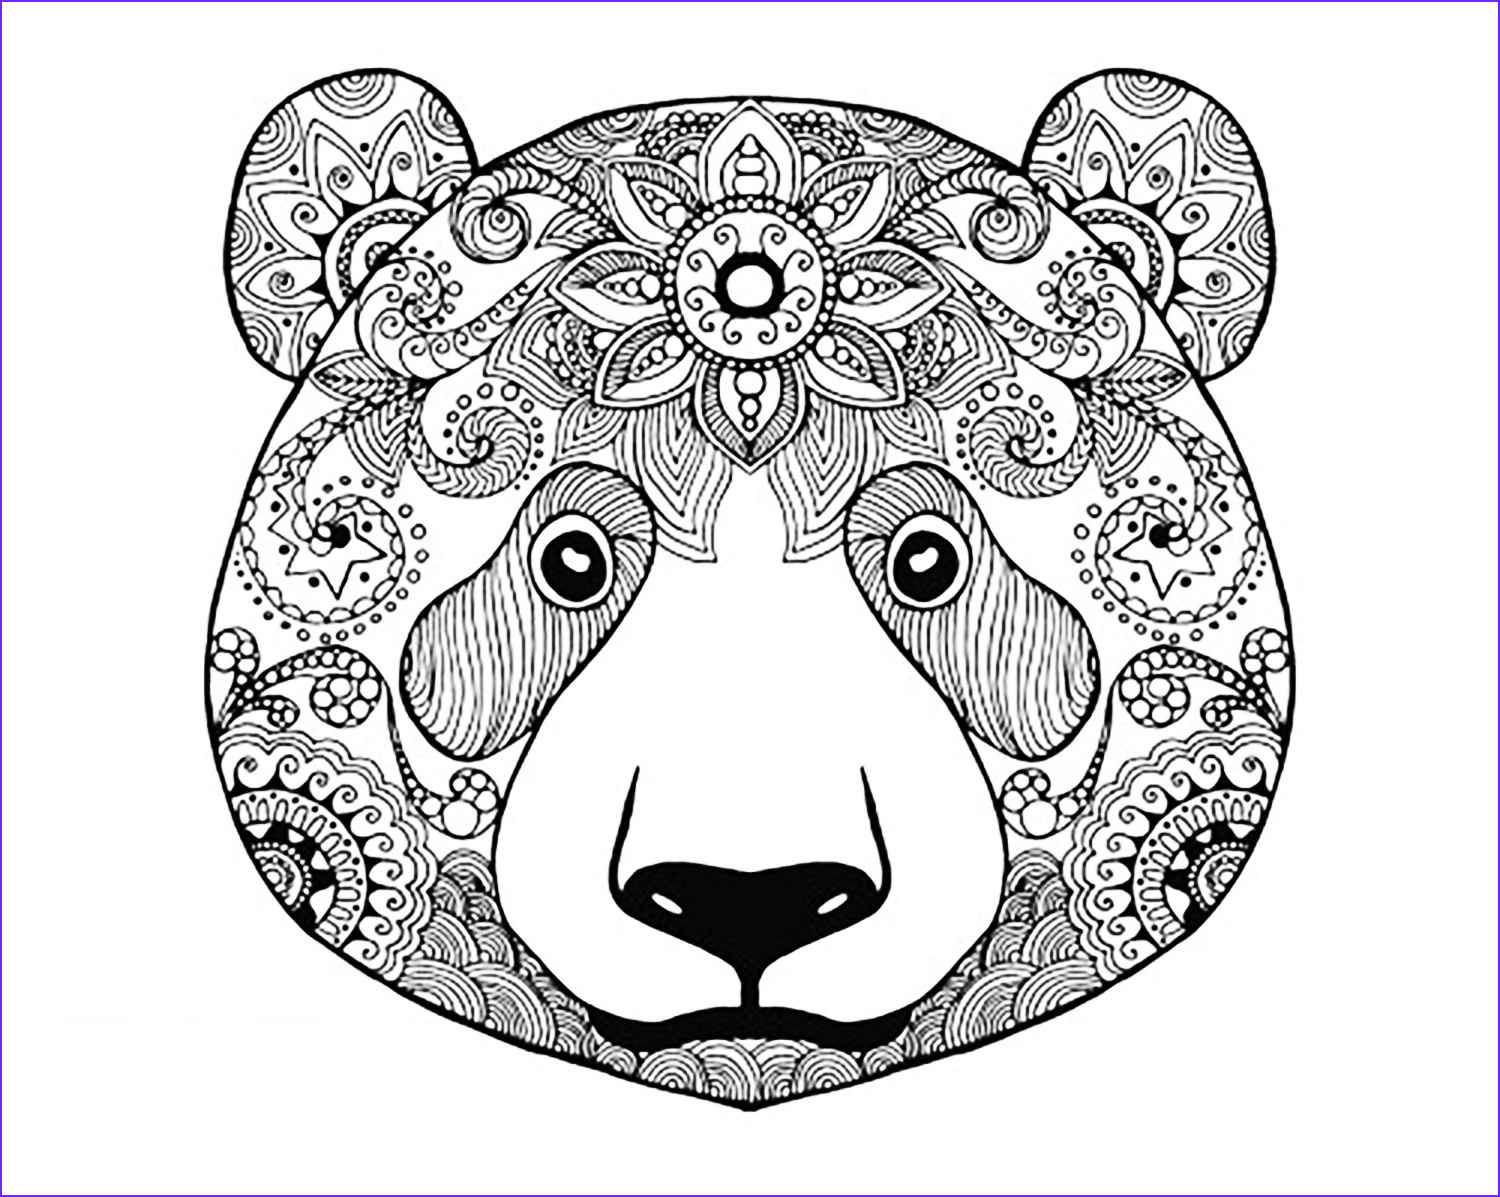 Coloring Pages Of Animals Best Of Photos Adult Coloring Pages Animals Best Coloring Pages for Kids